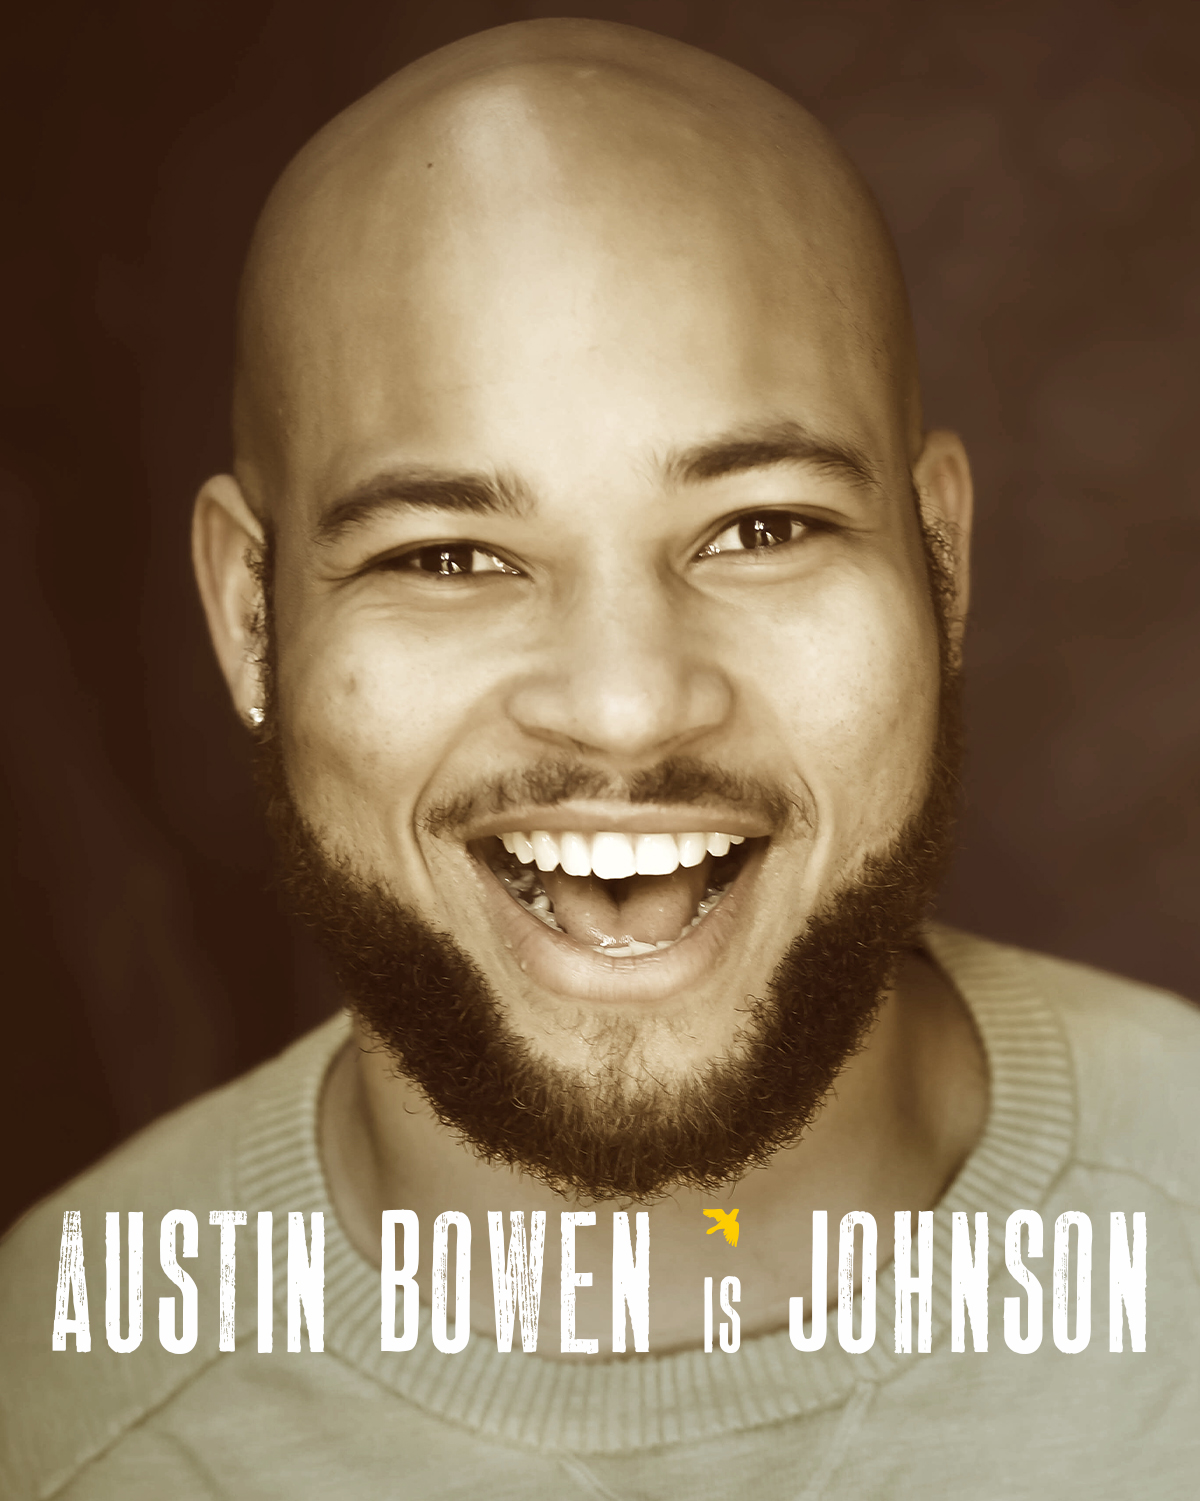 AUSTIN BOWEN  (Johnson) currently resides in New York, but Virginia is home; that's where mom is! Some of his Regional credits include  Little Shop of Horrors ,  Chicago ,  All My Sons ,  Les Mis , etc. When he returns back to New York, he will rejoin his cast for the Second Off-Broadway residency of  Rebirth of a Rabbits Foot , a Hip Hop Vaudeville show that's running until December at The People's Improv Theatre. You can follow him on his journey on Instagram  @austinjbowen  or Facebook:  Austin Bowen